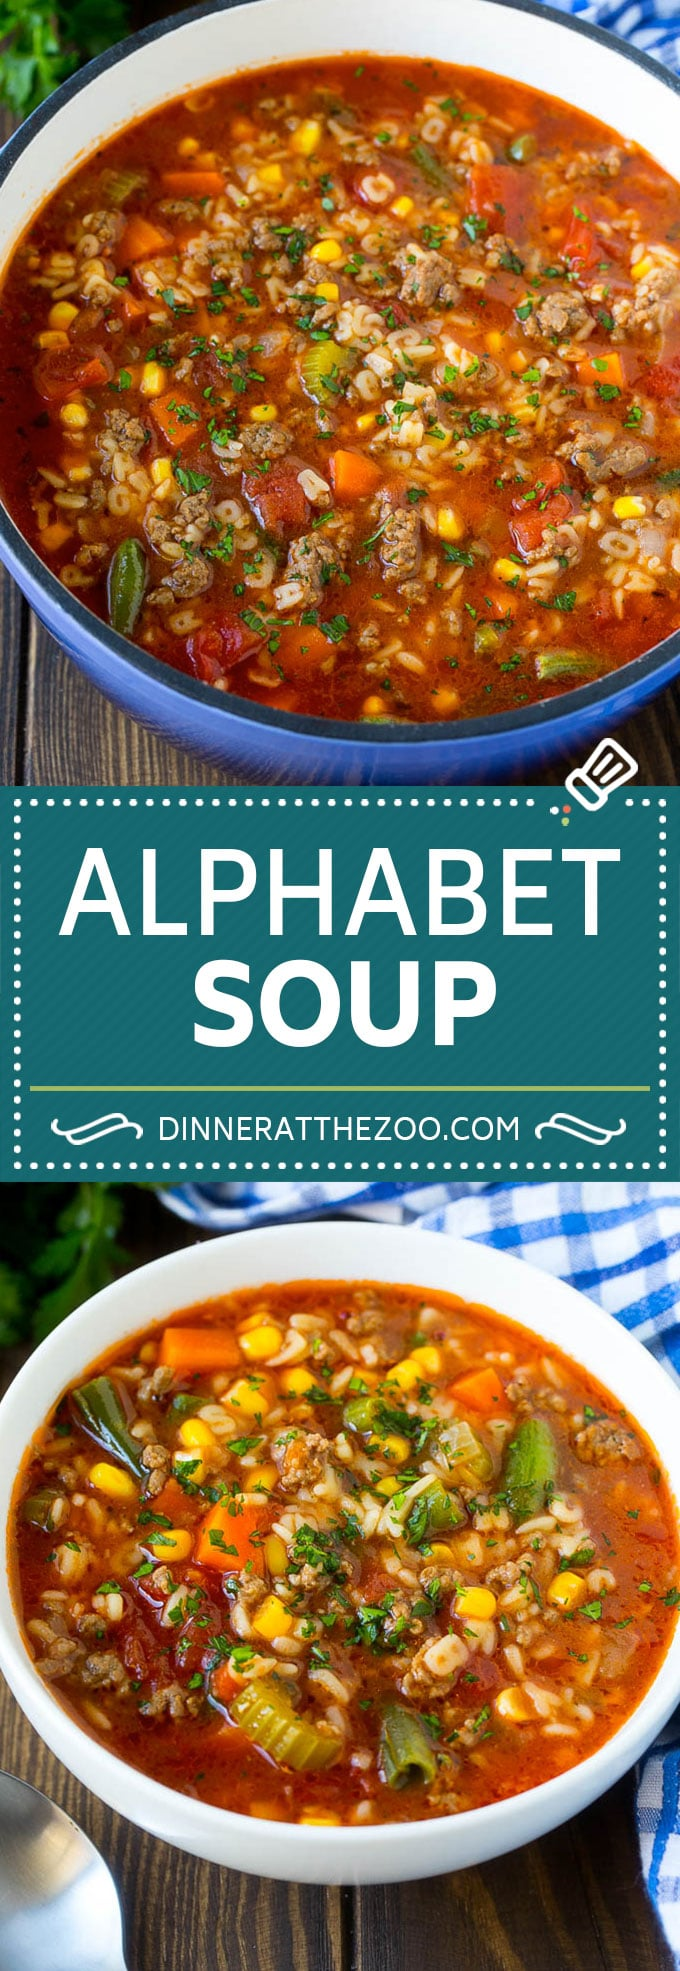 Alphabet Soup Recipe | Hamburger Soup | Beef and Vegetable Soup #soup #hamburger #noodles #dinner #dinneratthezoo #carrots